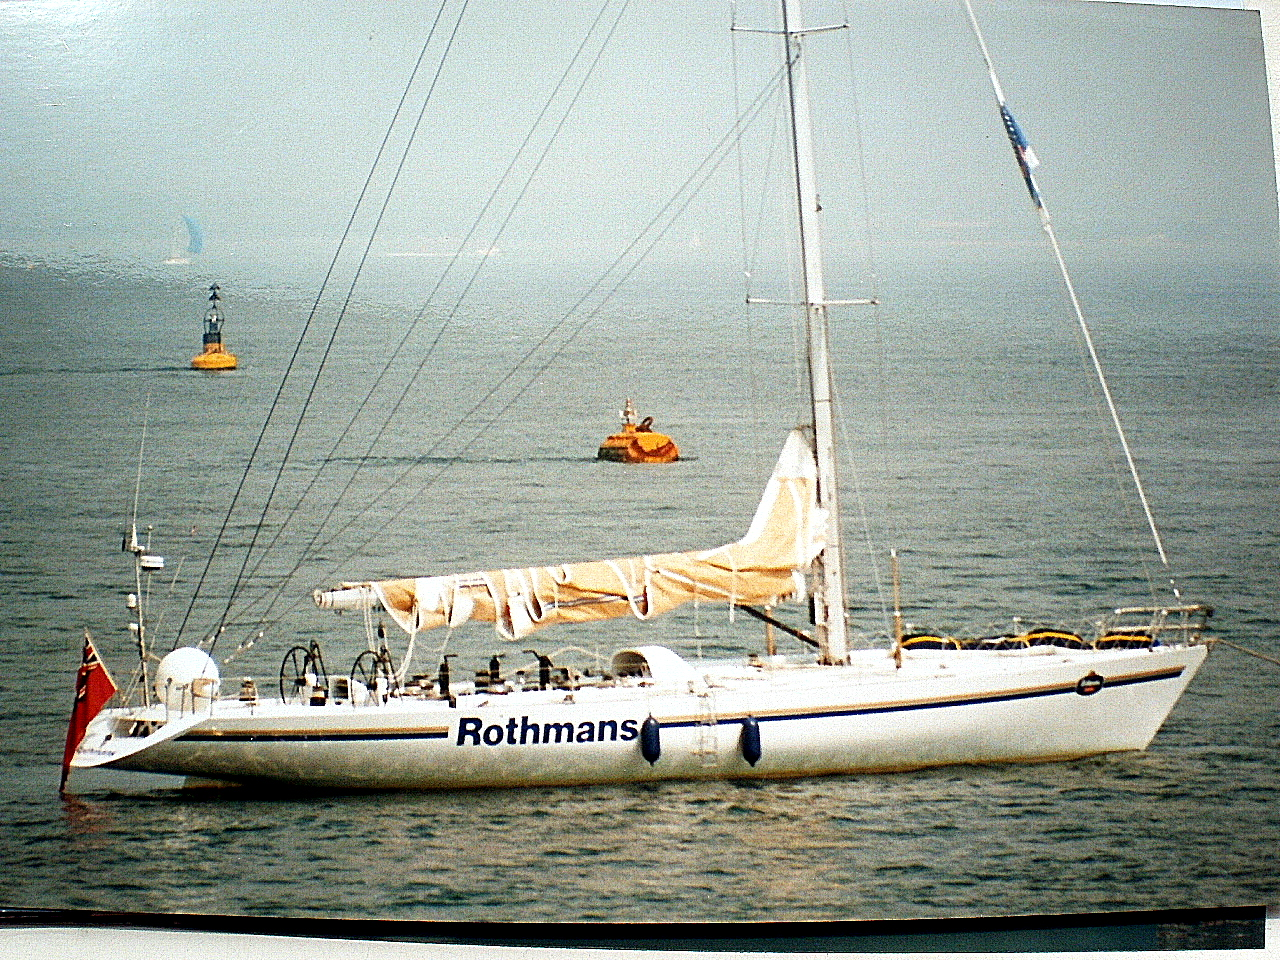 Round The World Yacht Race Editorial Photo - Image: 25821351